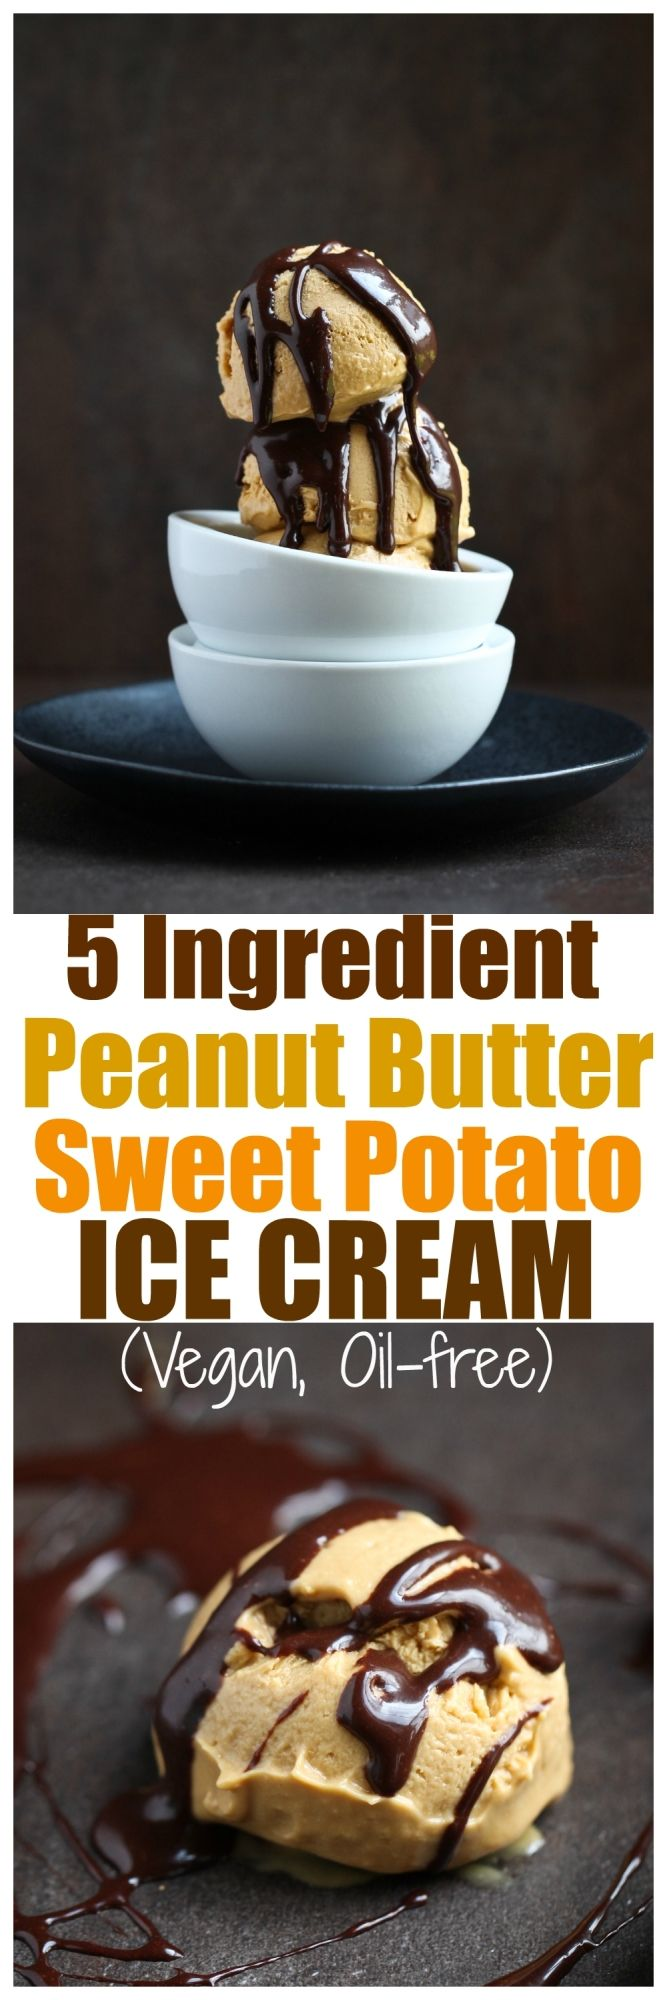 5 Ingredient Vegan Peanut Butter Sweet Potato Ice Cream. Vegan, dairy-free, oil-free, gluten-free peanut butter ice cream made with sweet potatoes & coconut